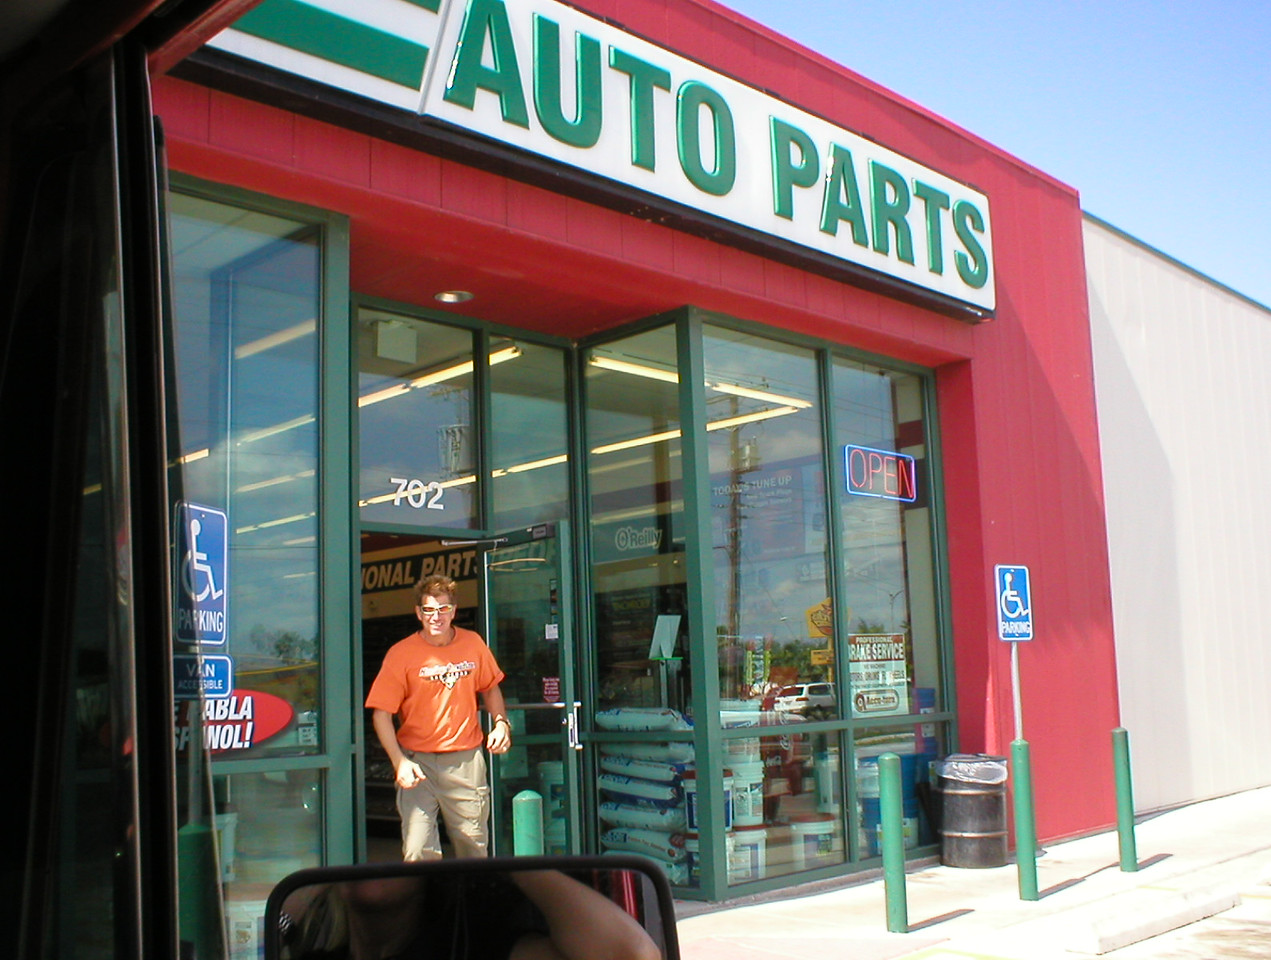 I'm not making any of this up! A mile or two across the border we thought the drive shaft was going to fall off again. 250 miles, we've gone through another U-joint. I know it has to be that wrong bracket holding the U-joint in place that is the problem. A mile or two later I see this auto parts store. I go in and buy two new U-joints and a matching bracket set, about $25.